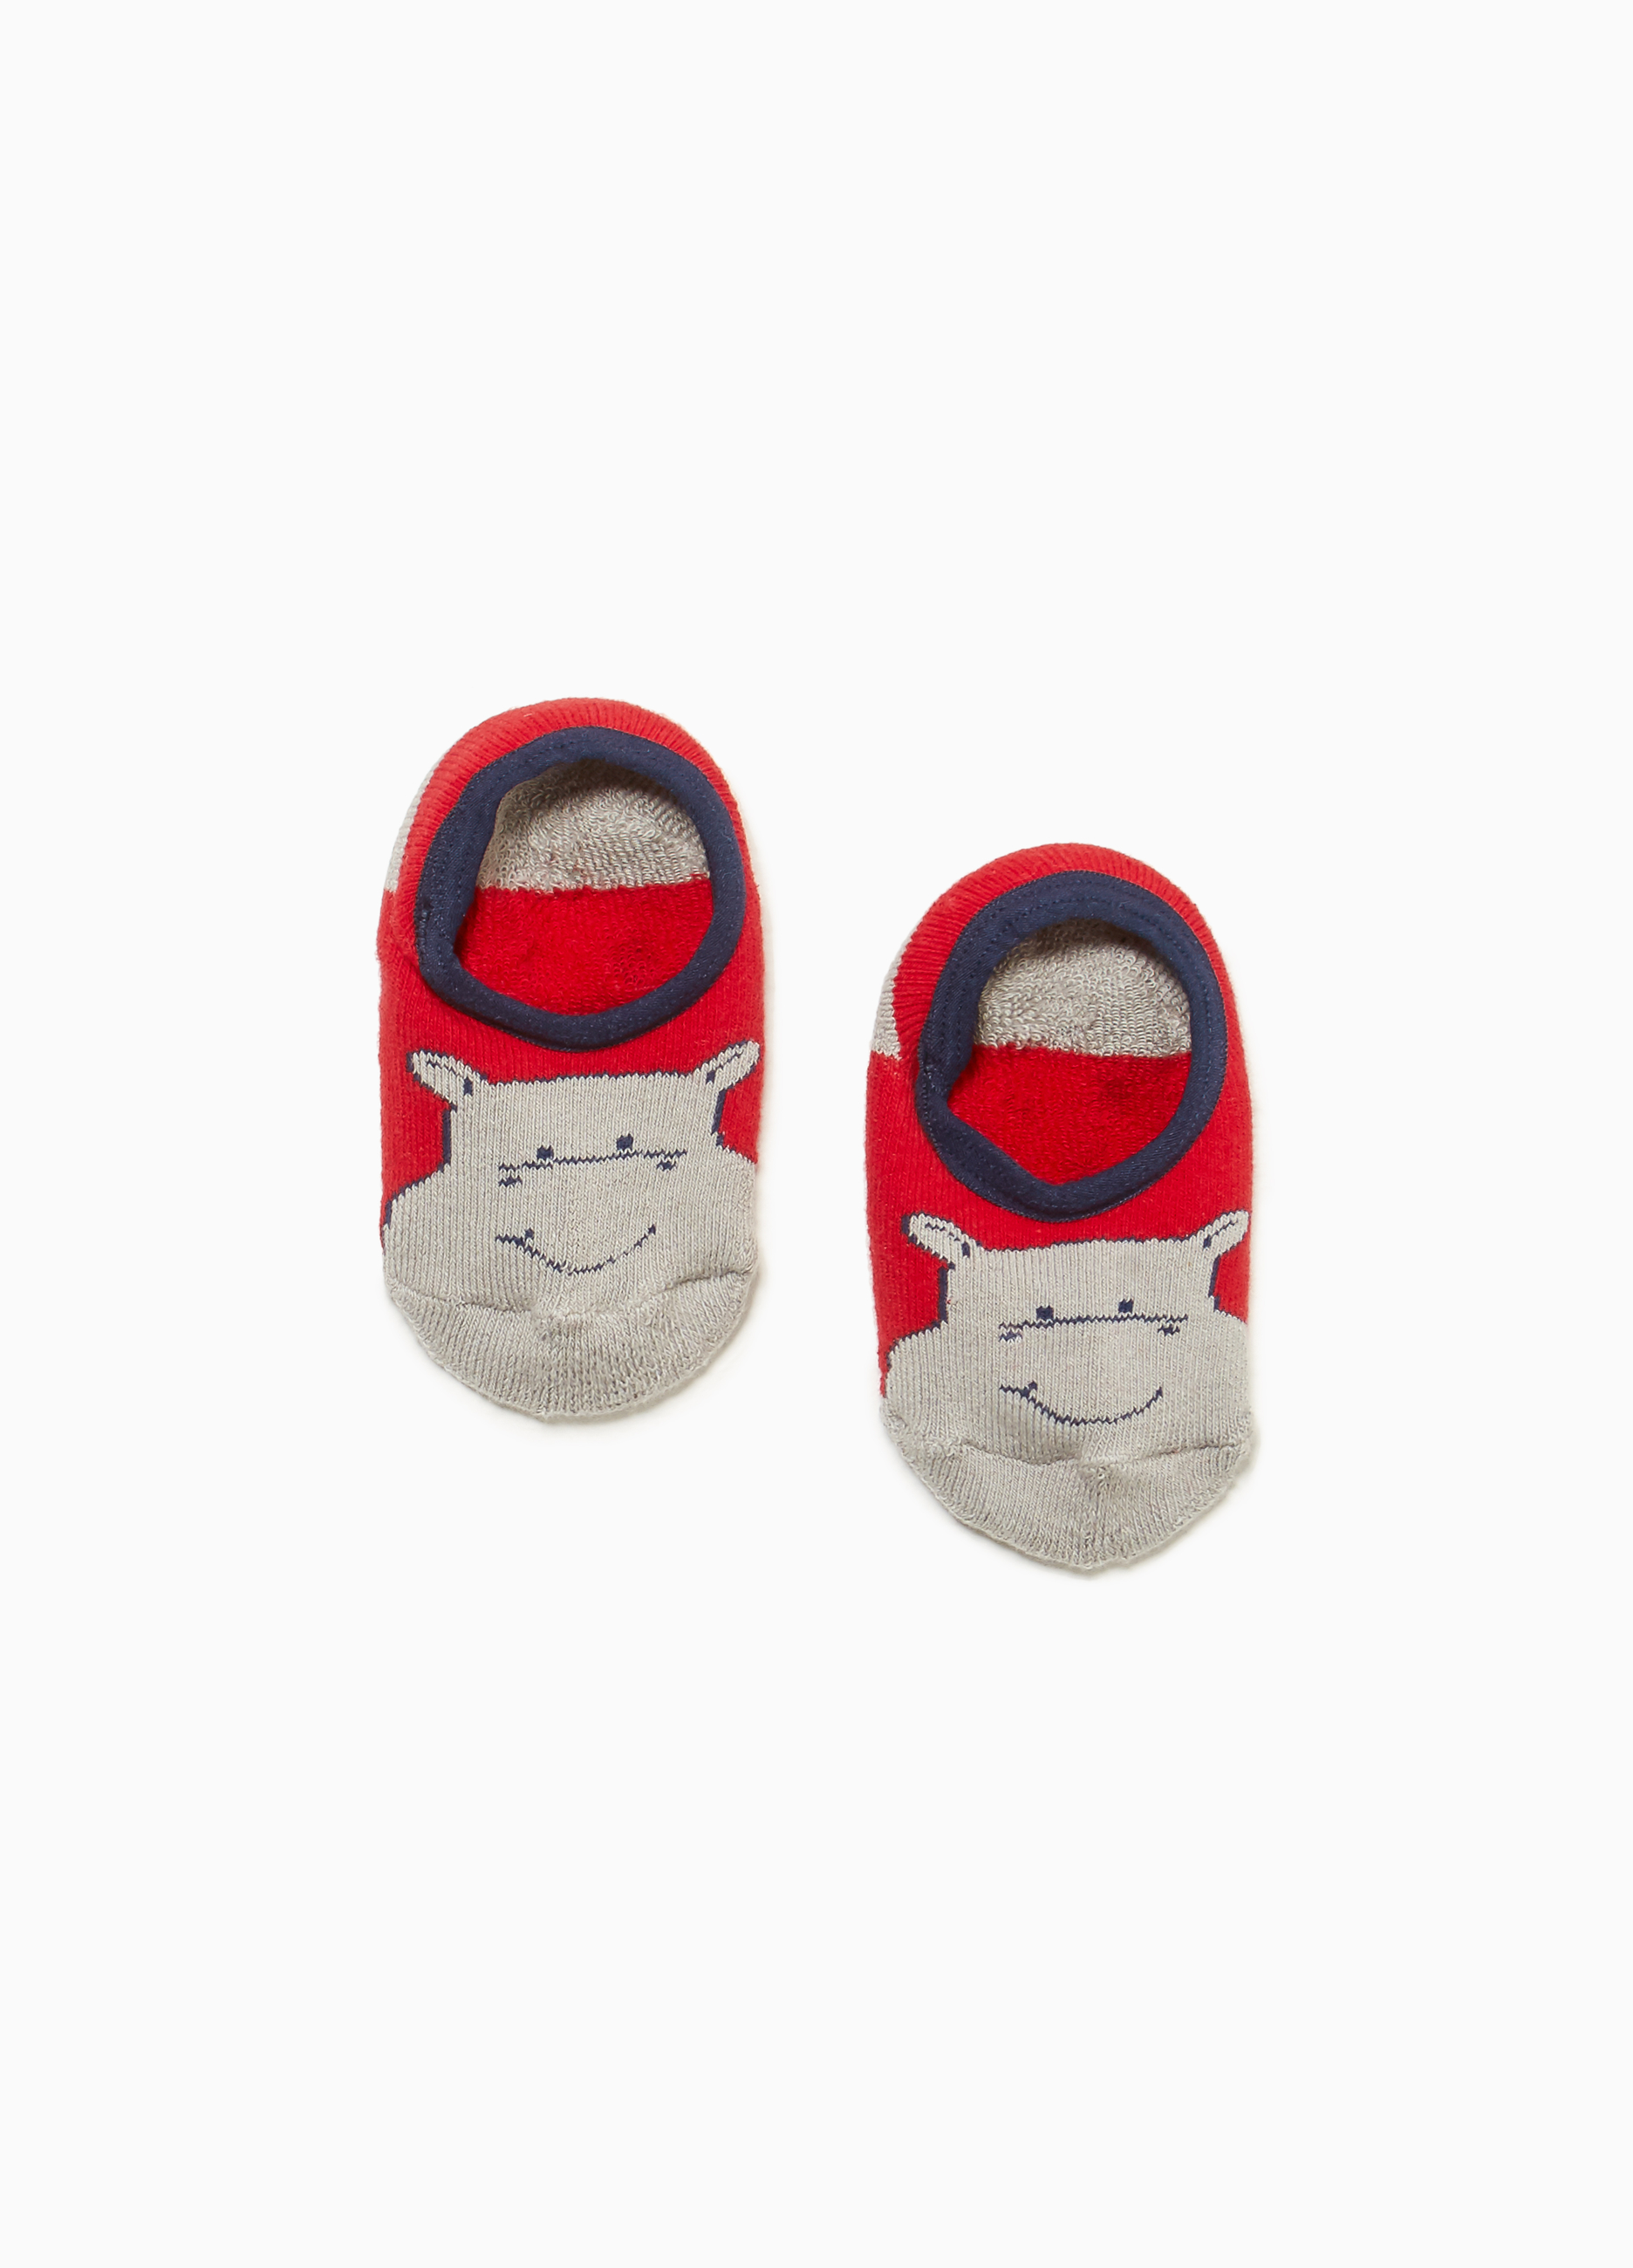 Hippopotamus embroidered slipper socks